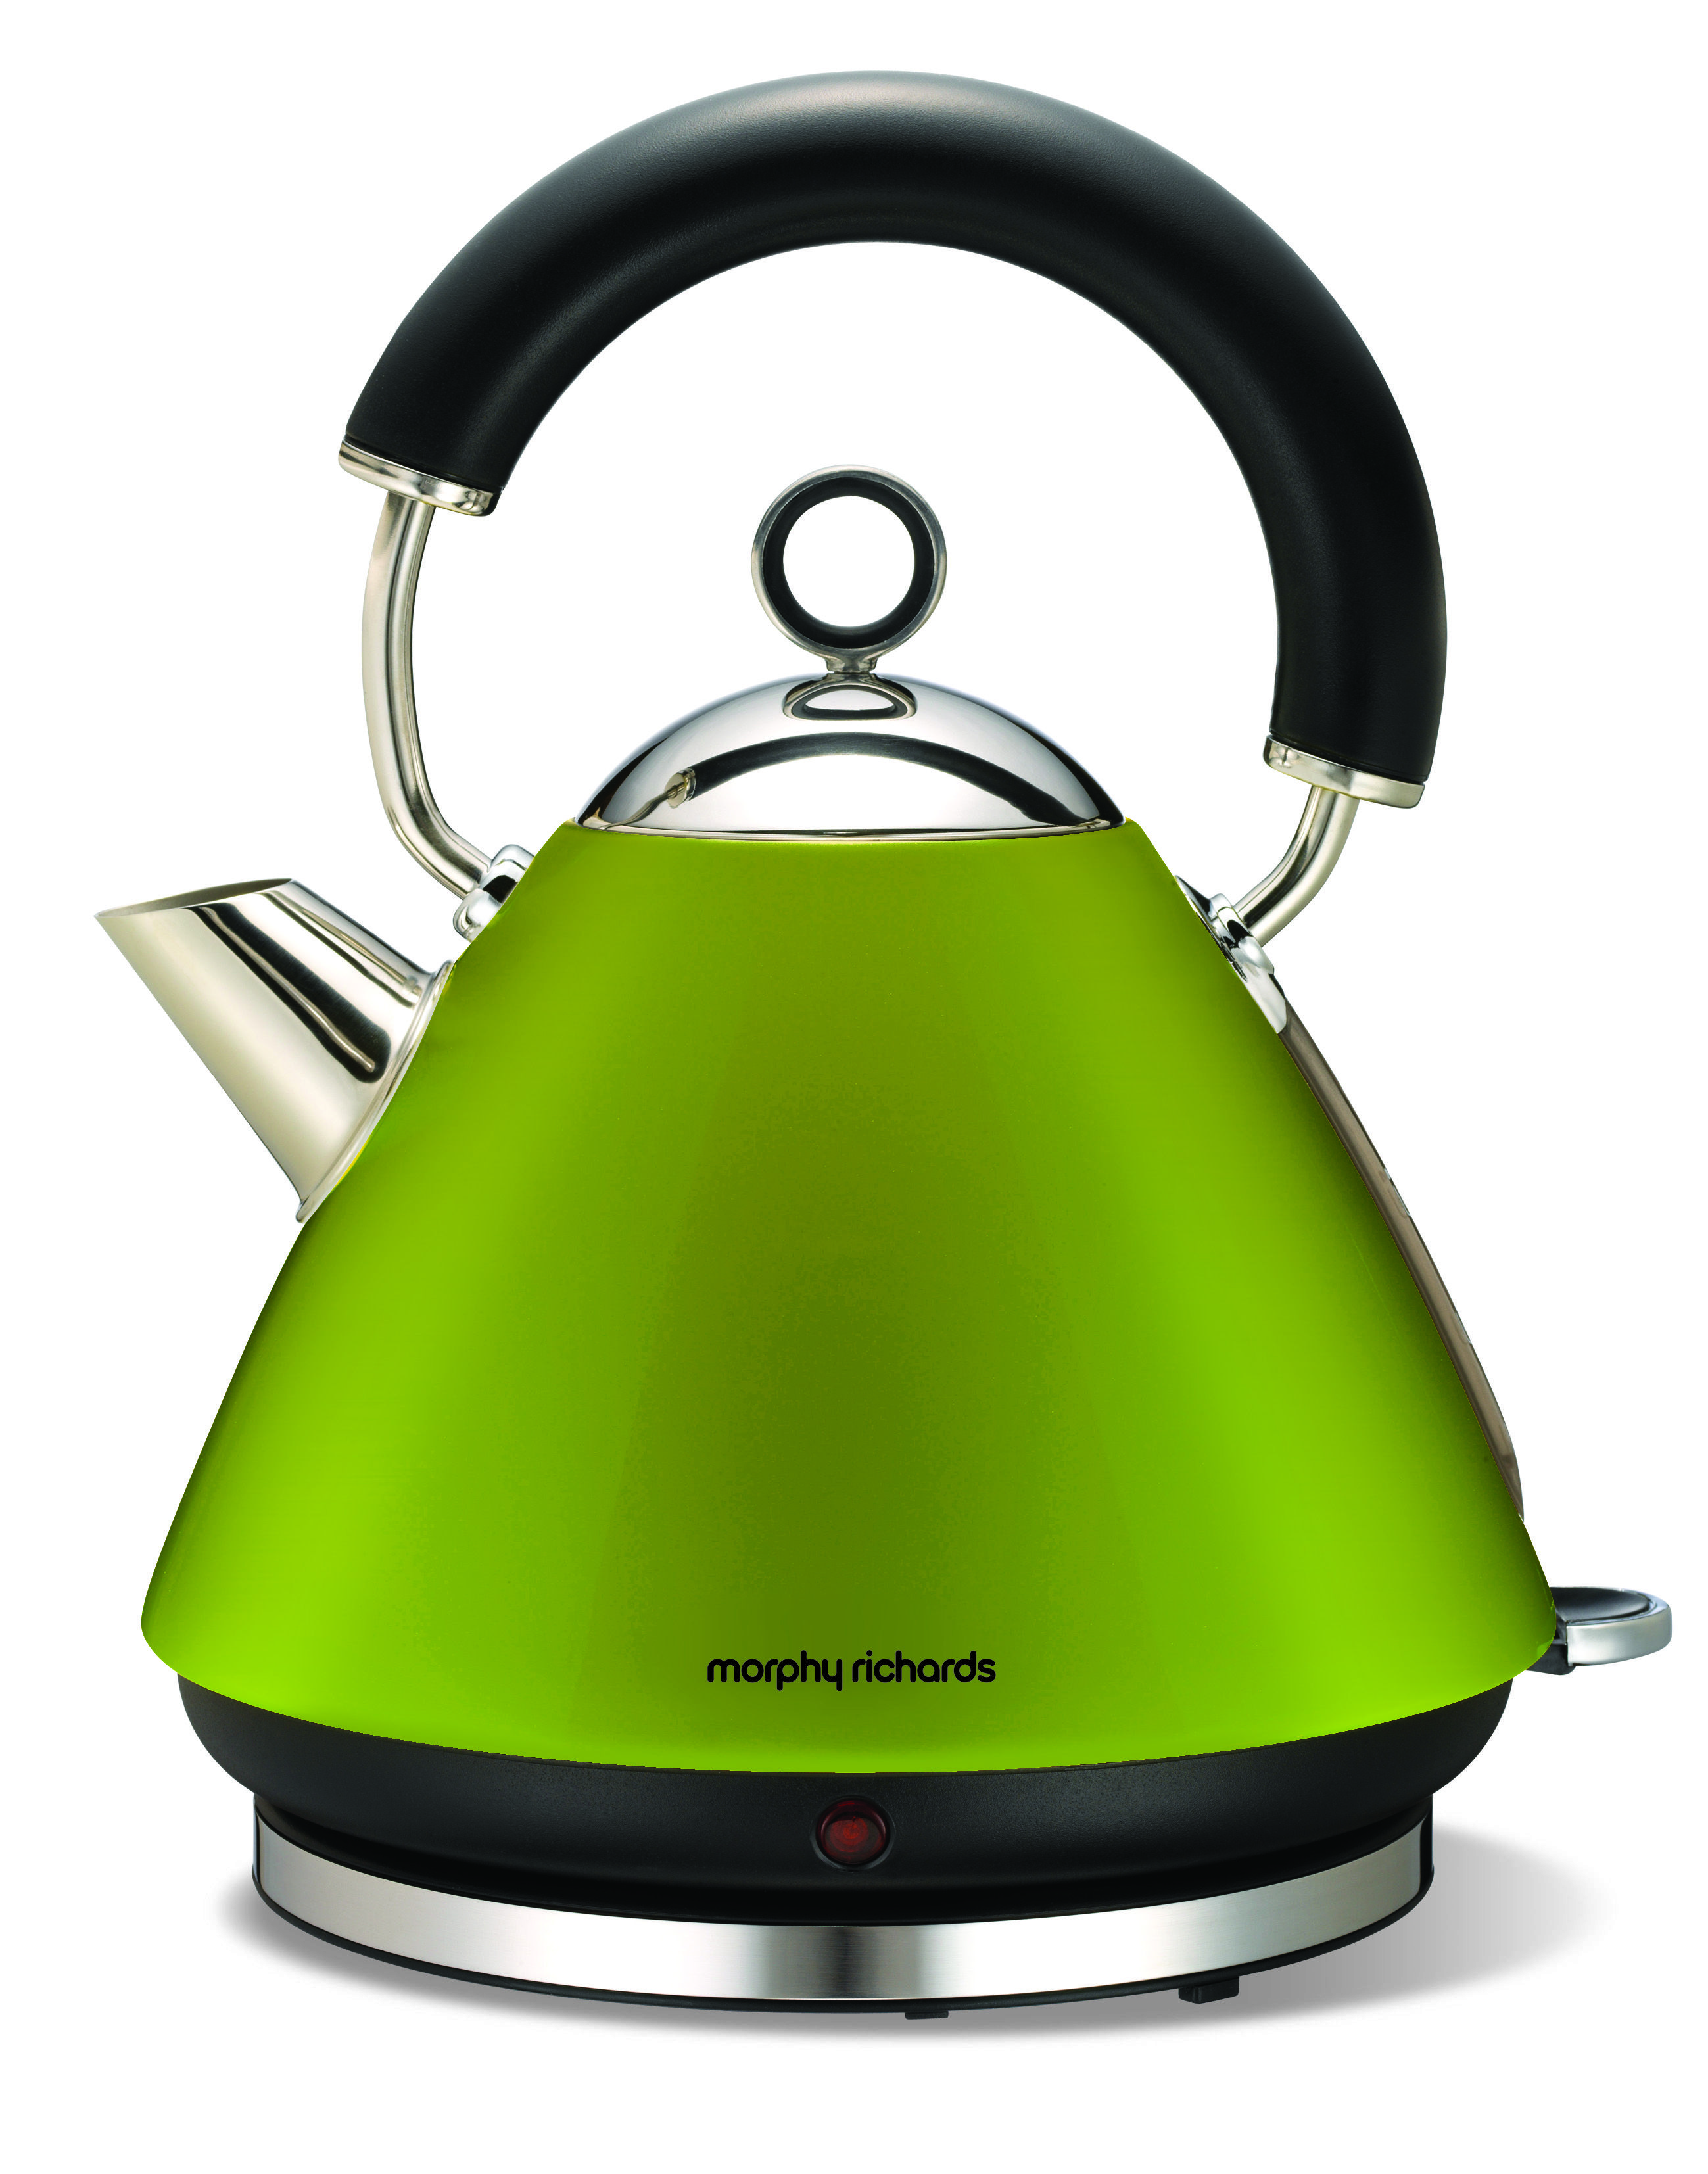 this morphy richards oasis green toaster would match my kitchen